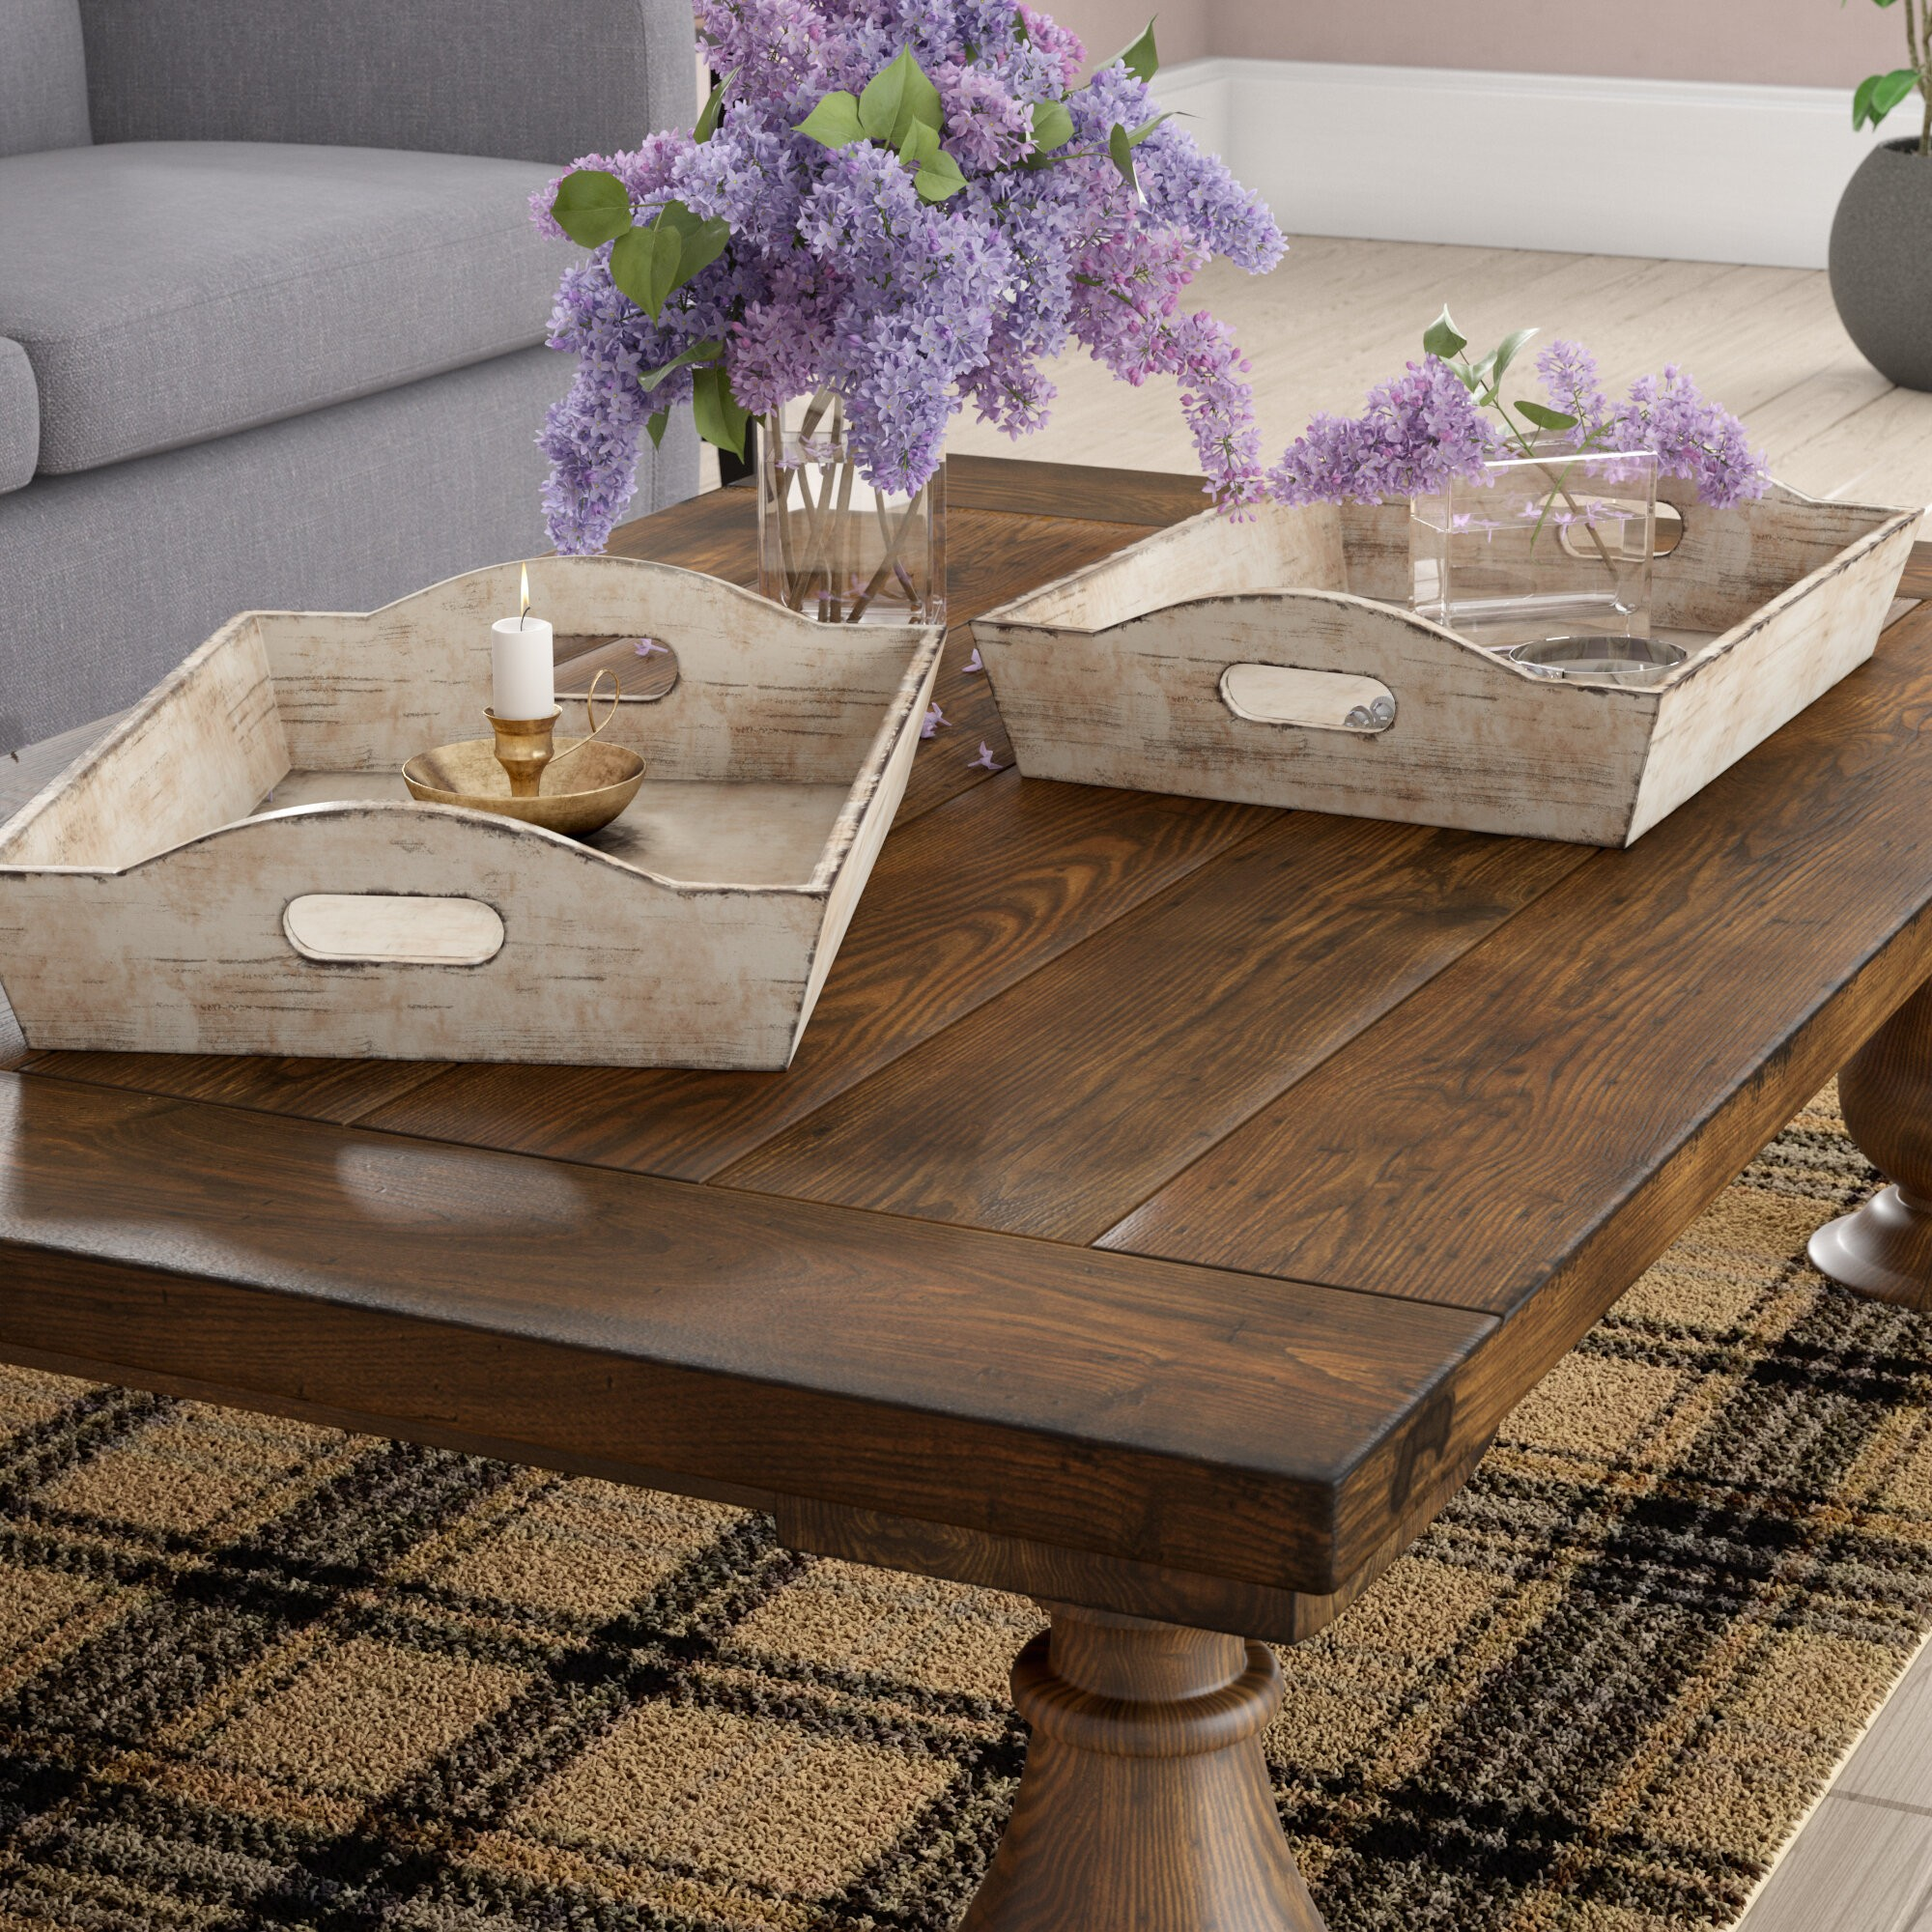 10 best decorative trays for 2021